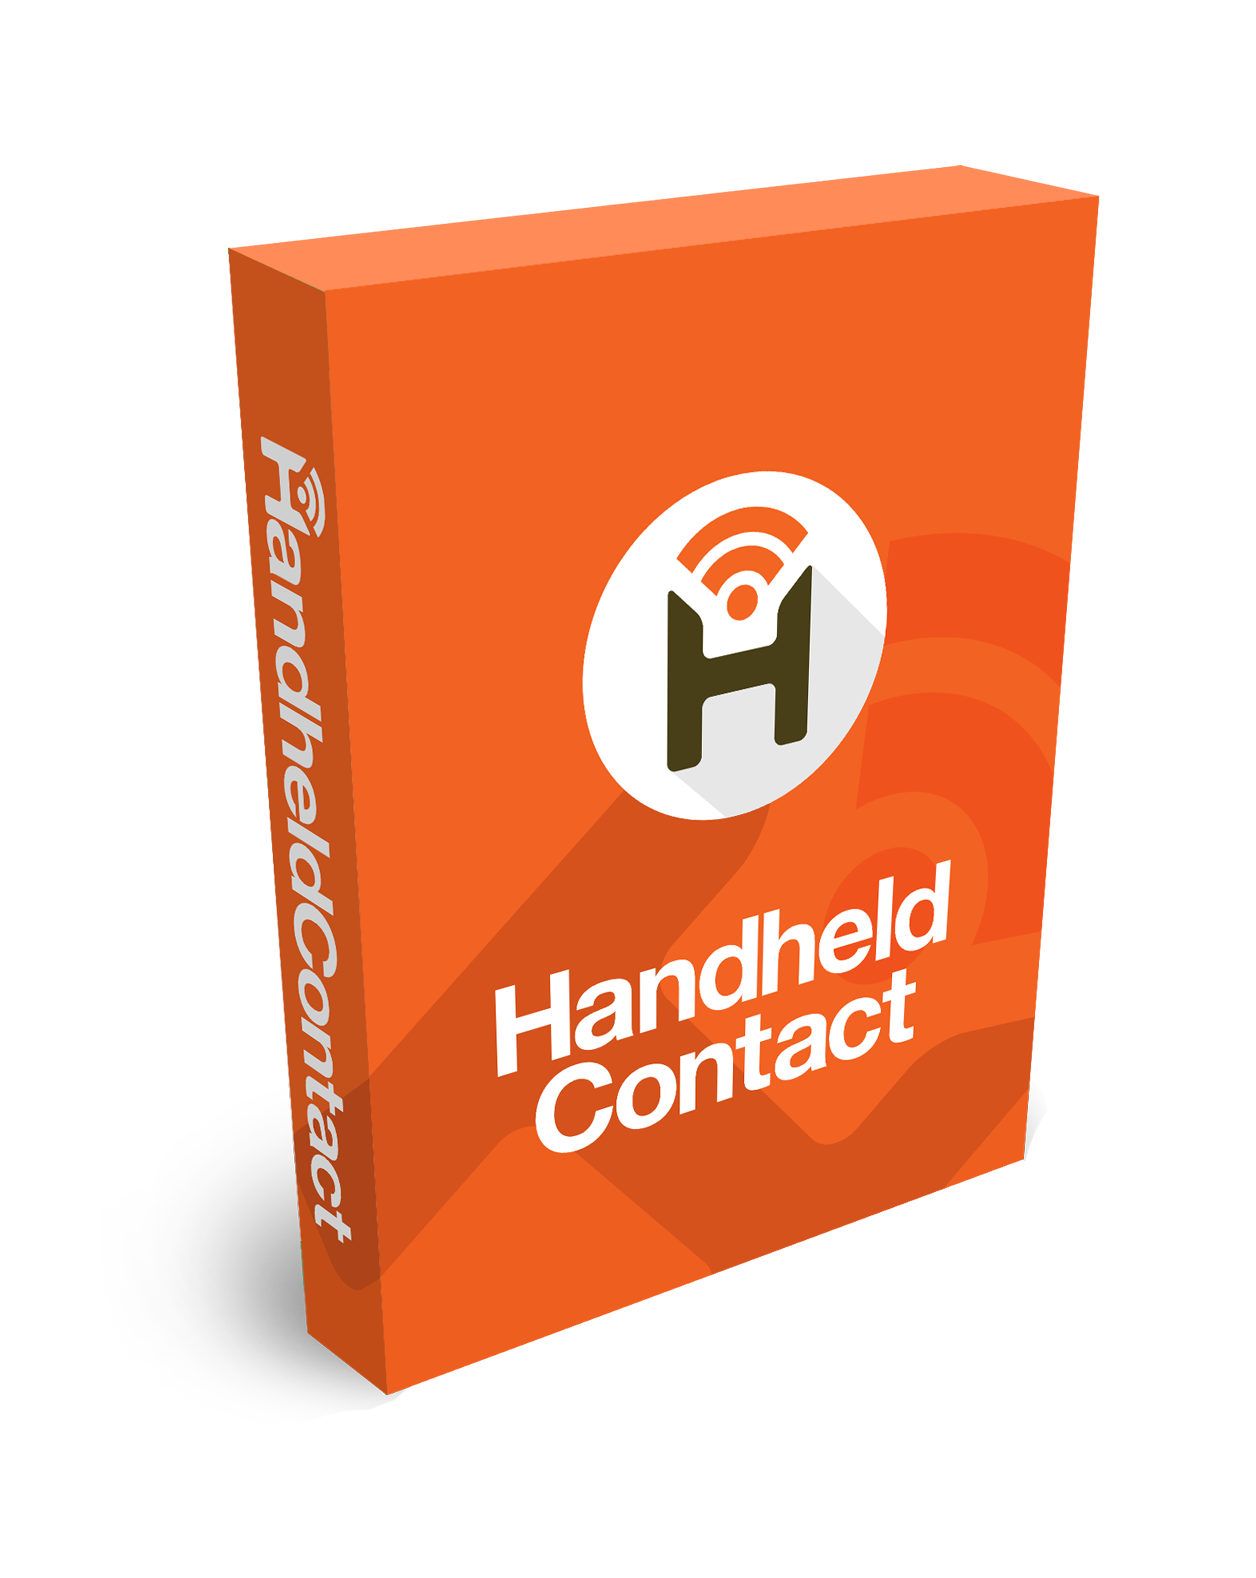 handheldcontact_product-box_whitebg.png